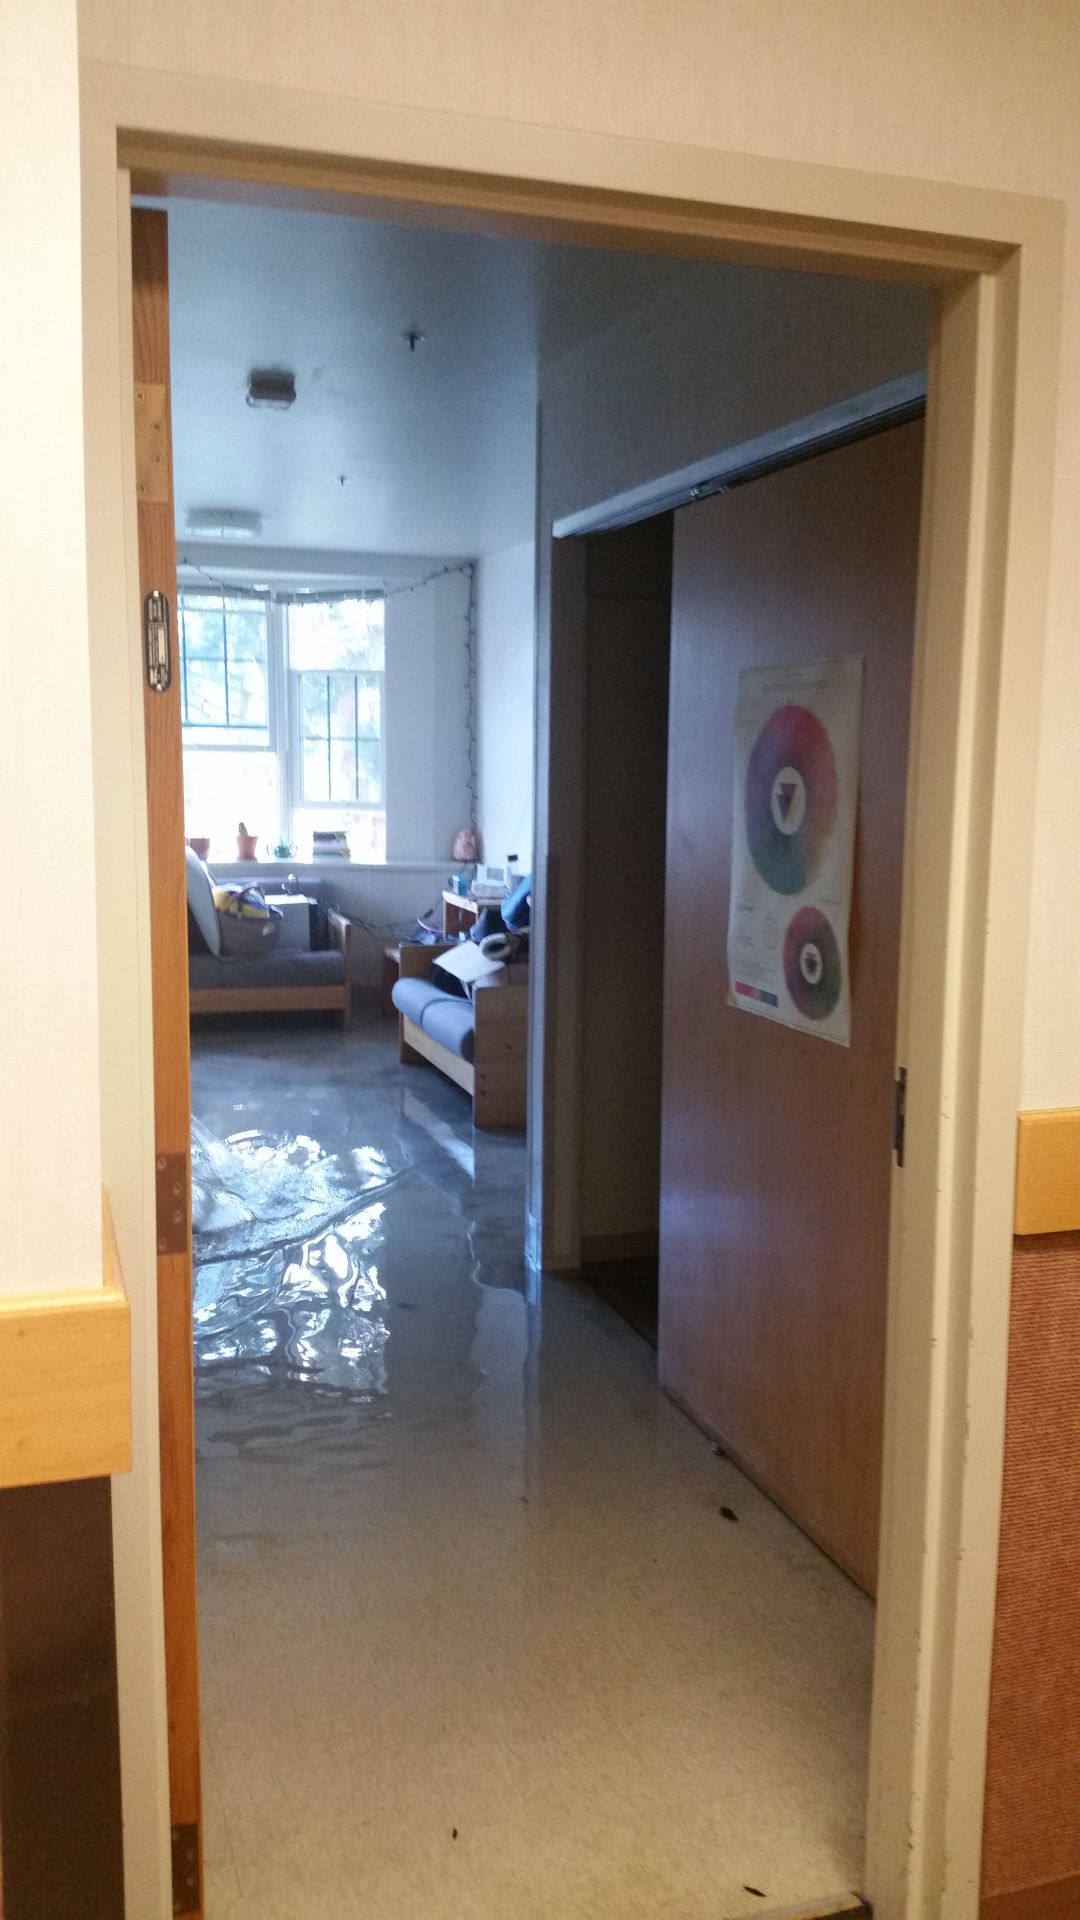 BREAKING: Pantzer Hall Fire Sets Off Sprinklers, Floods Dorm Room